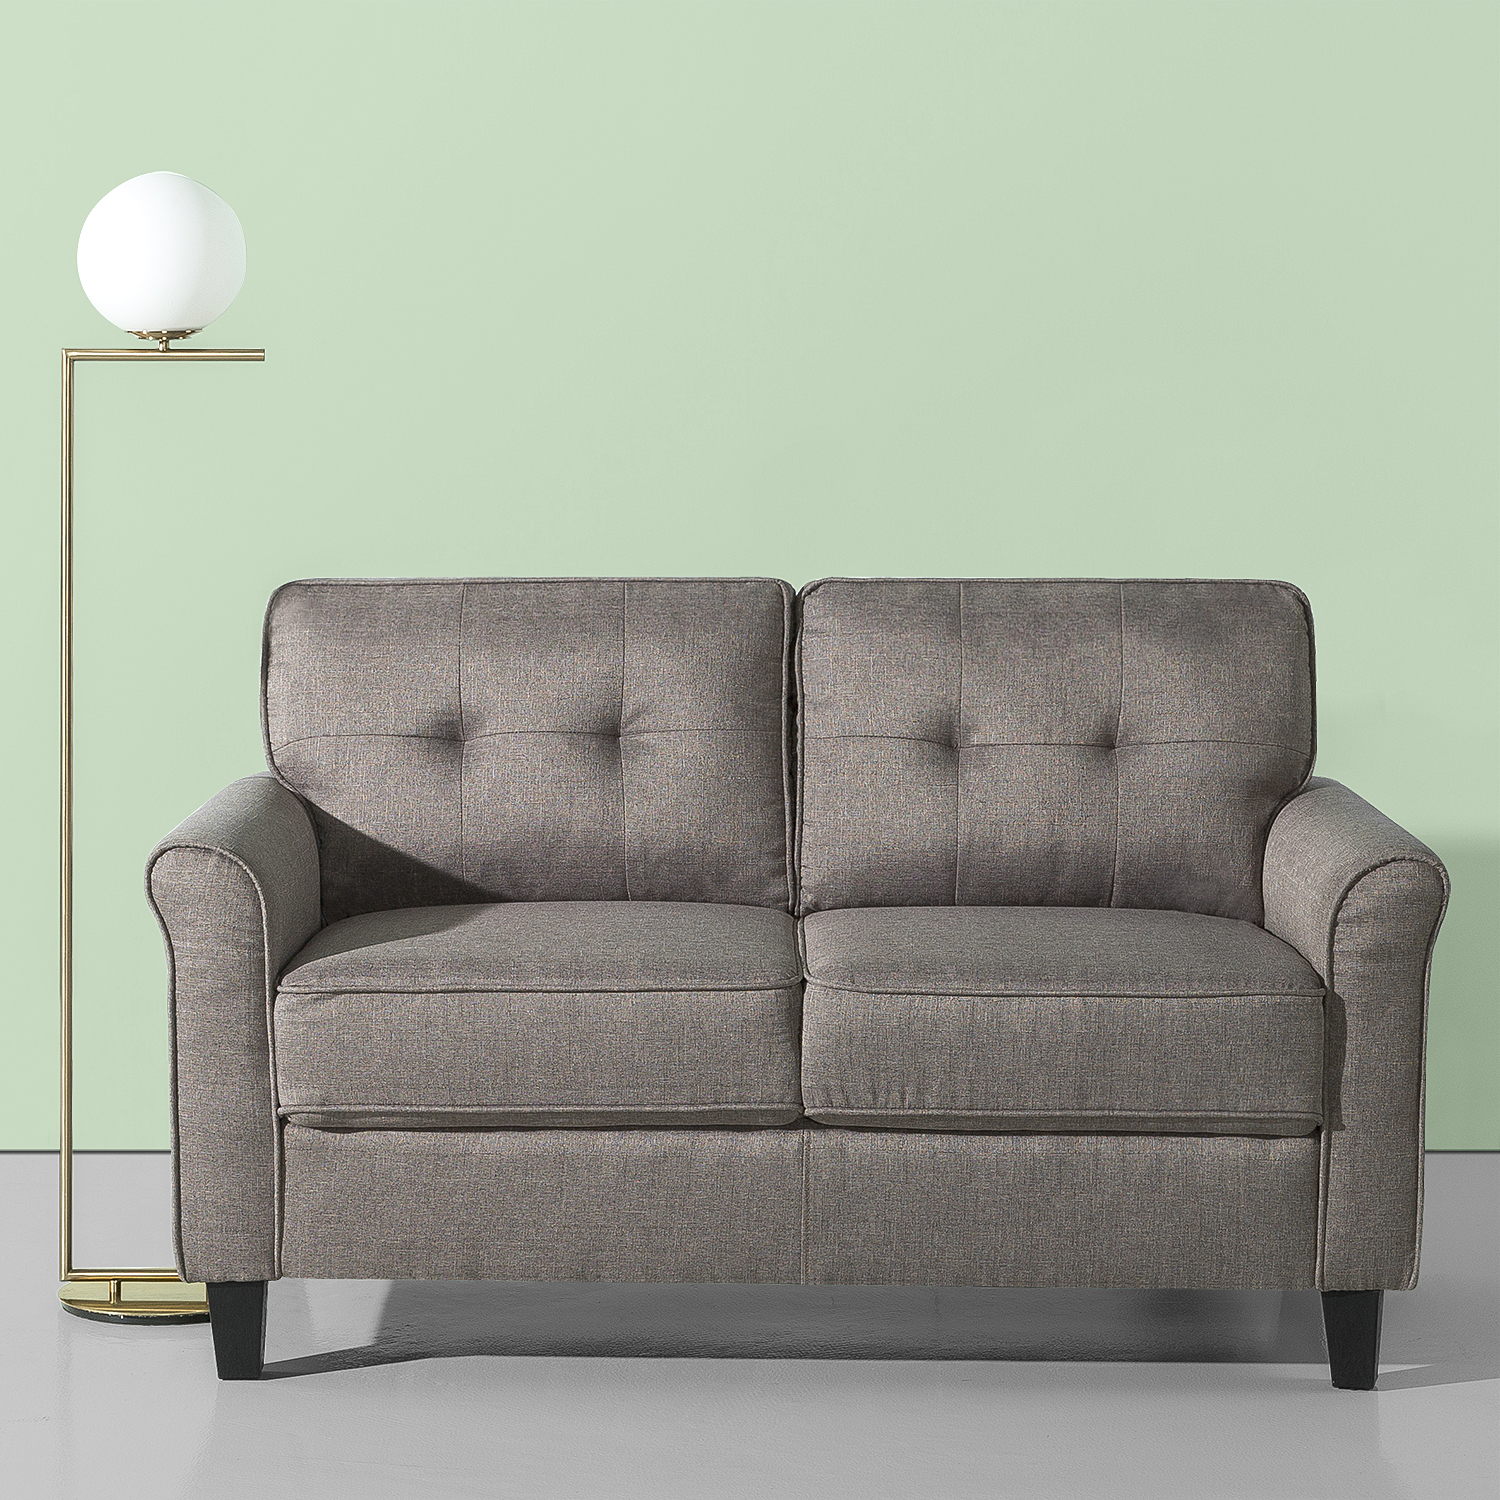 Zinus Josh Traditional Loveseat, Grey Weave - Walmart.com